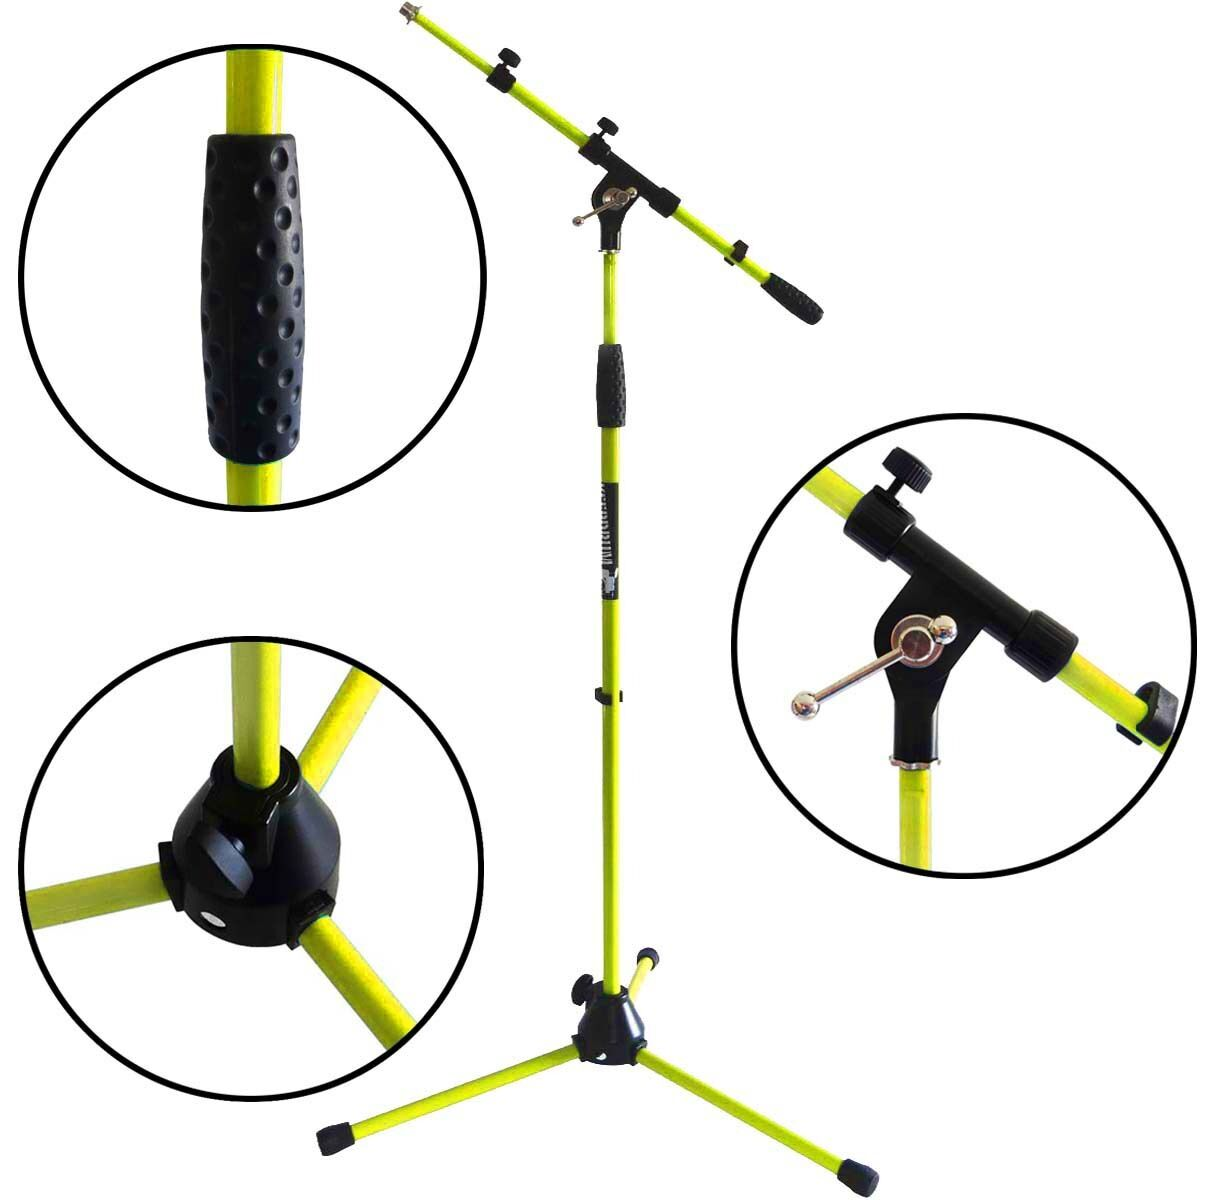 Keep DRUM MS106 YW Yellow Microphone Stand Microphone Stand with gallows U Metal Base